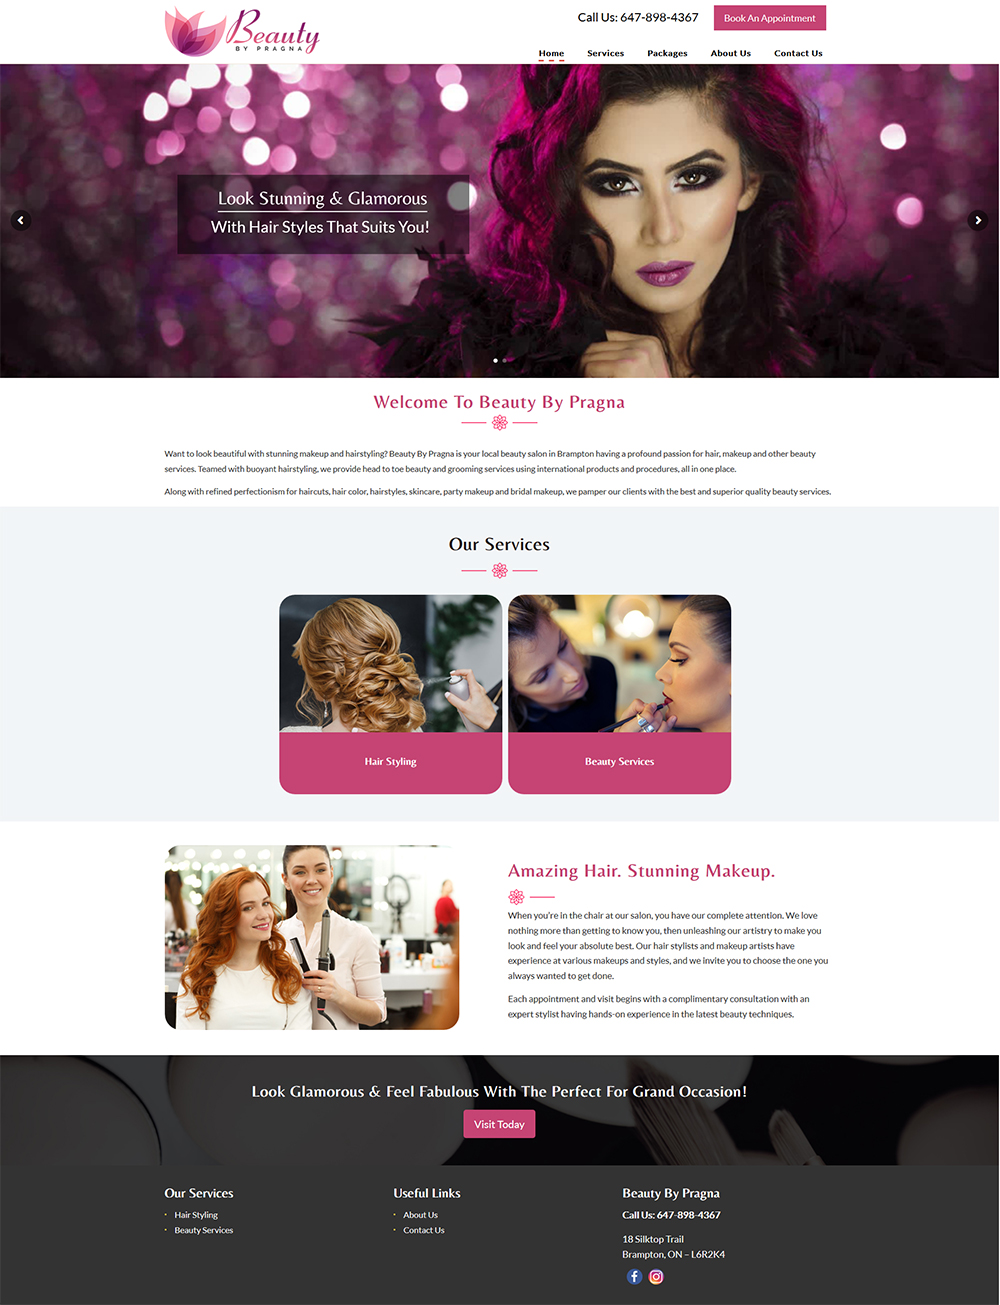 Web Design Portfolio San Francisco Bay Area Website Developer